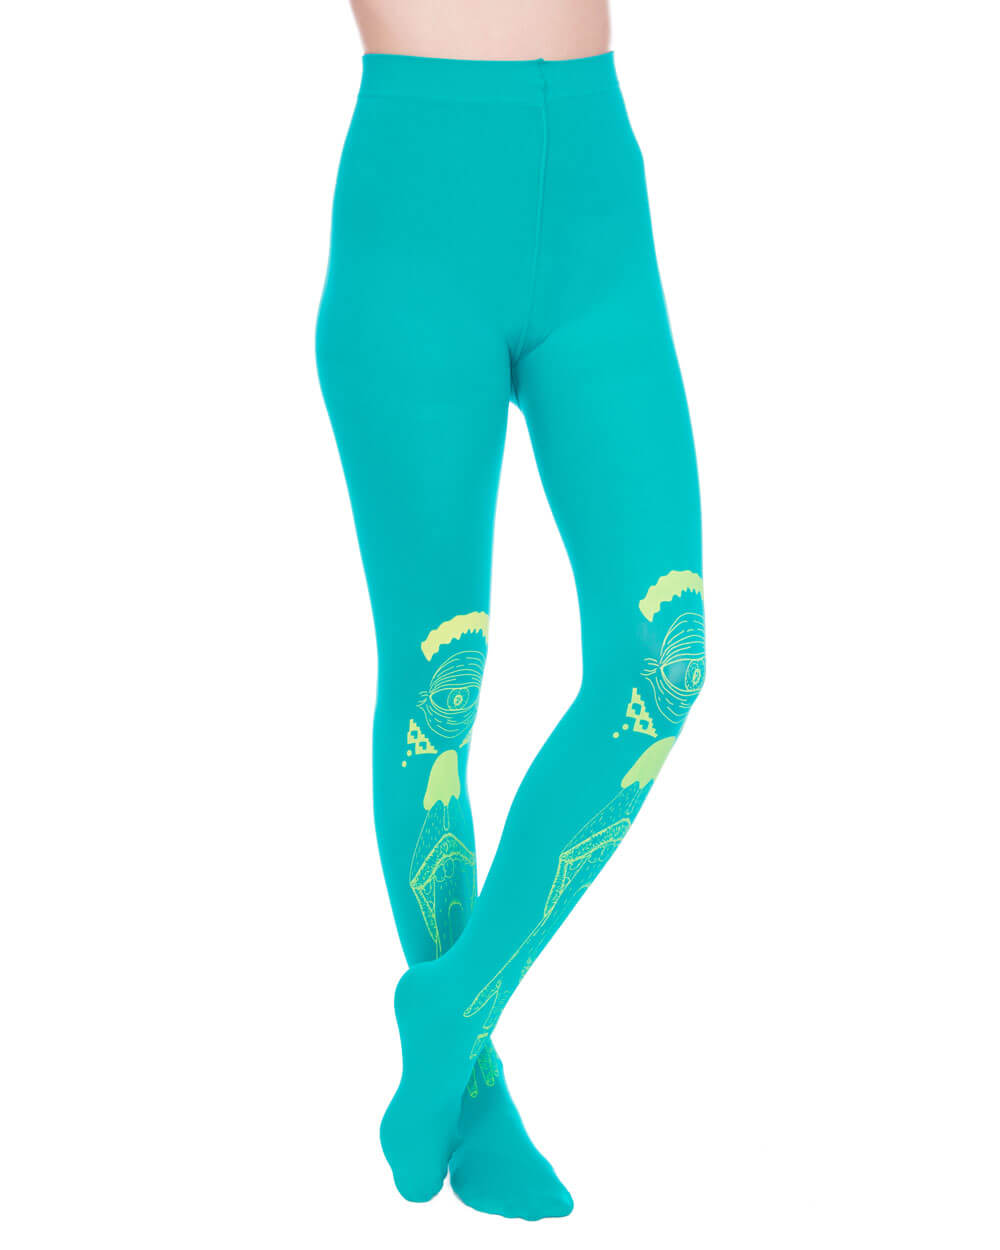 HAND EYE CYAN TIGHTS - Eros Mortis